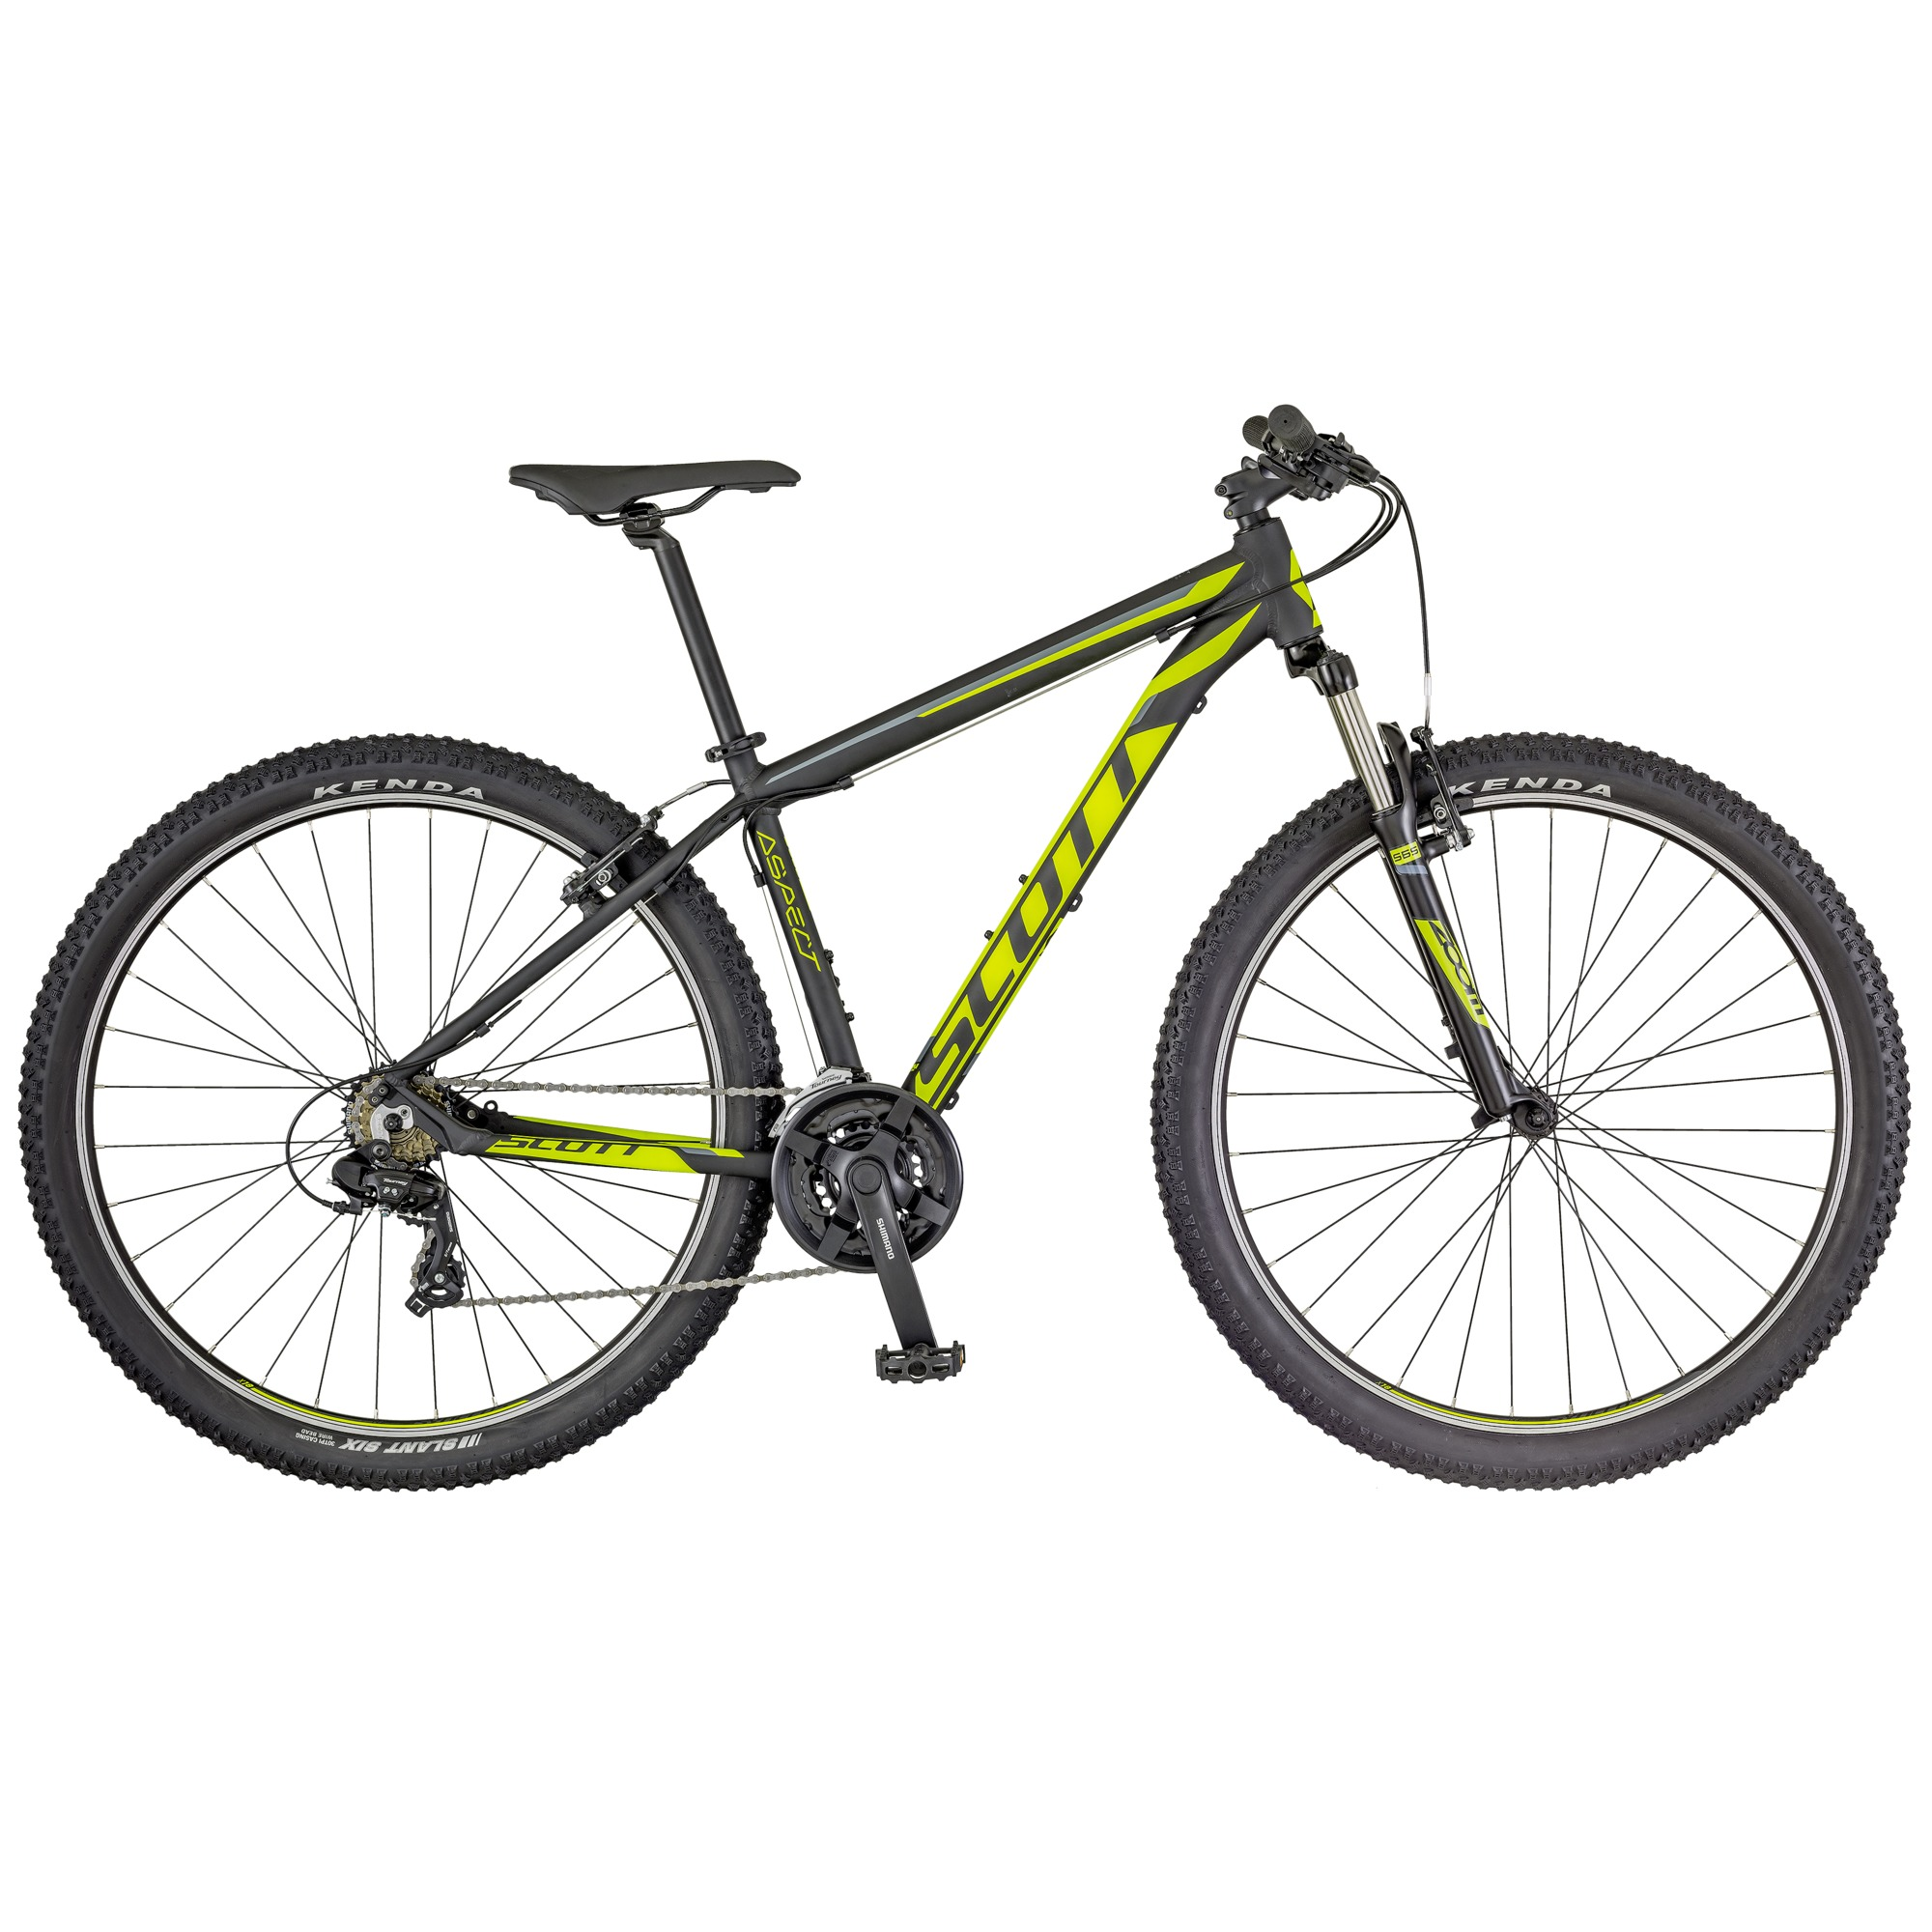 SCOTT Aspect 780 Bike L - SCOTT Aspect 780 Bike L